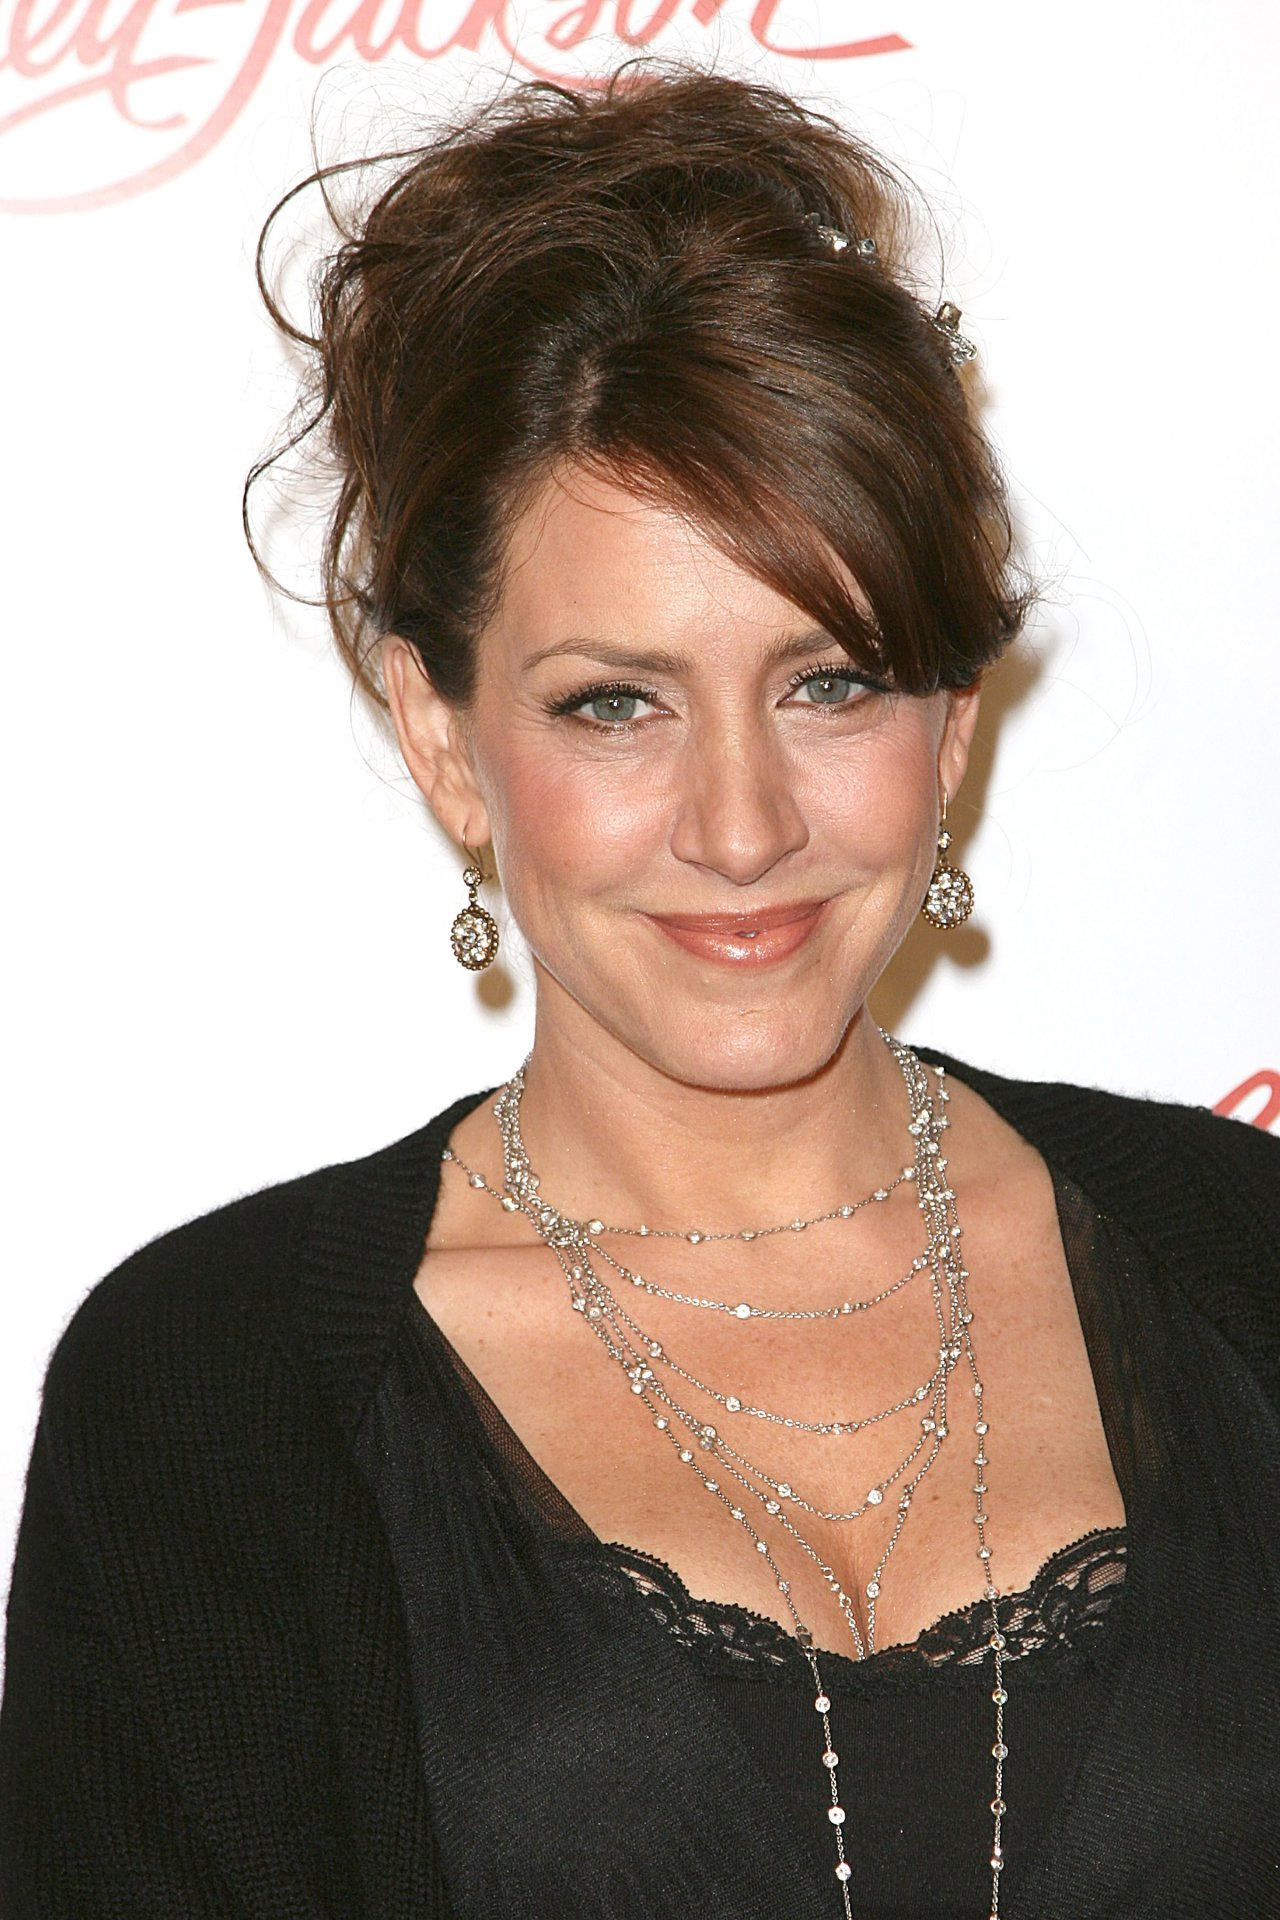 Joely Fisher Net Worth